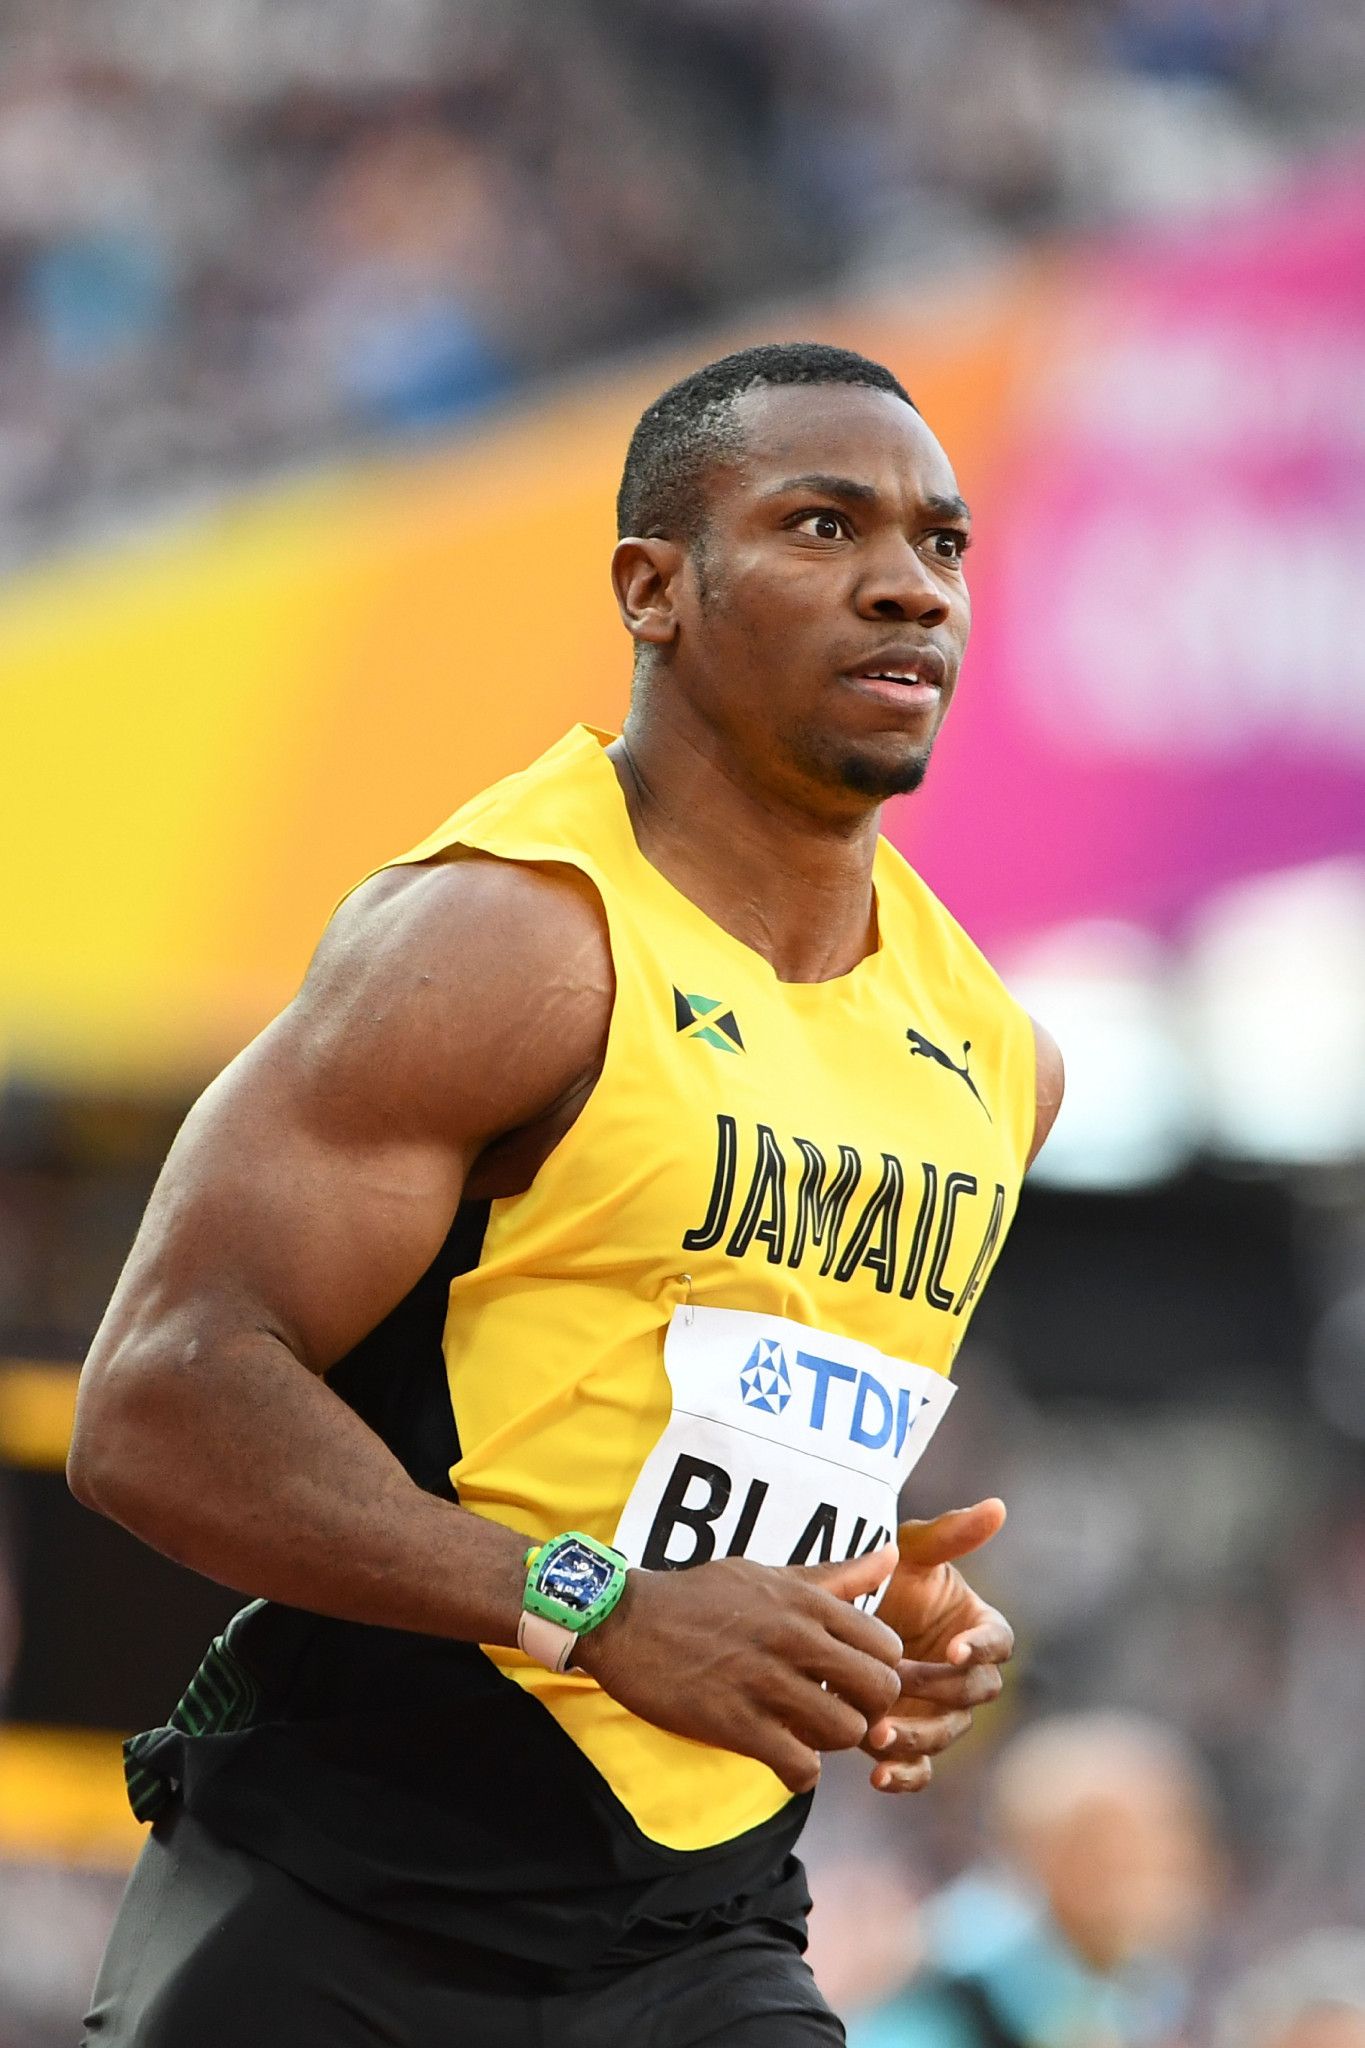 Yohan Blake has been warned by Usain Bolt that he has to win the Commonwealth Games 100 metres title at Gold Coast 2018 or